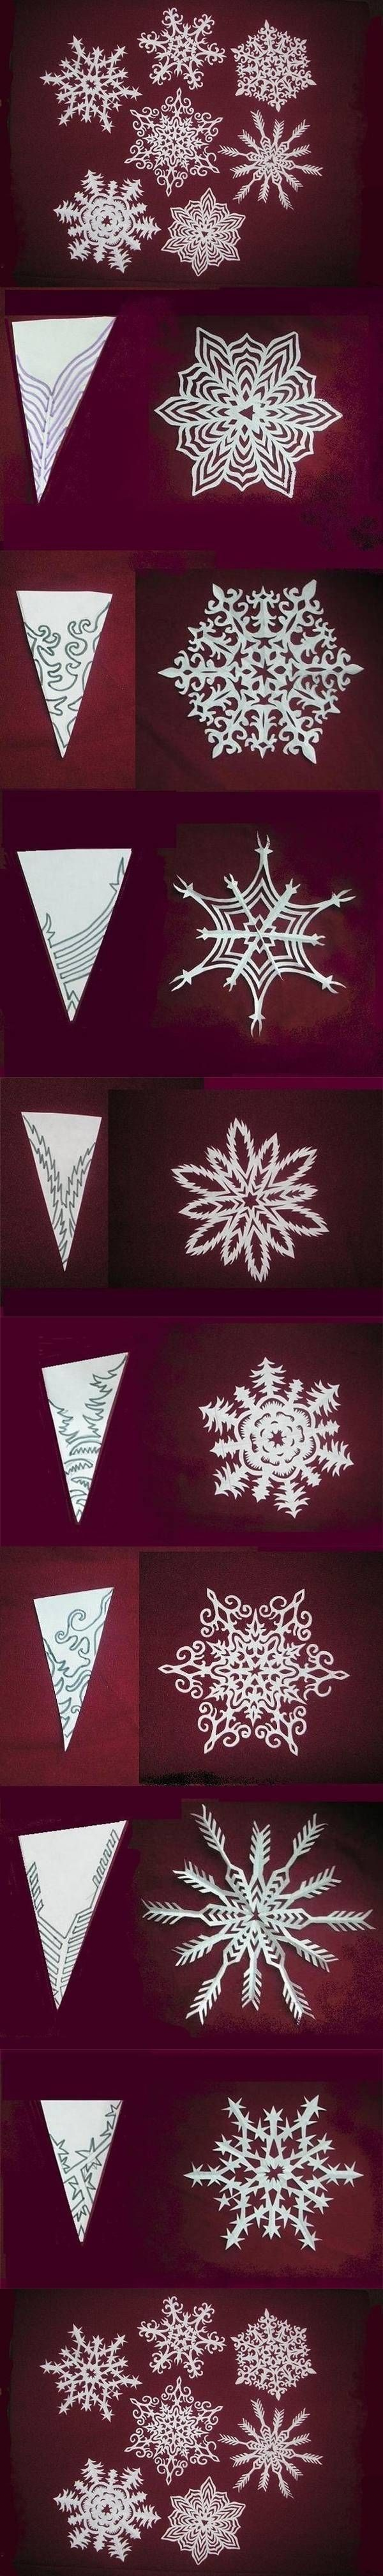 DIY Snowflakes Paper Pattern Tutorial DIY Snowflakes Paper Pattern Tutorial by catrulz